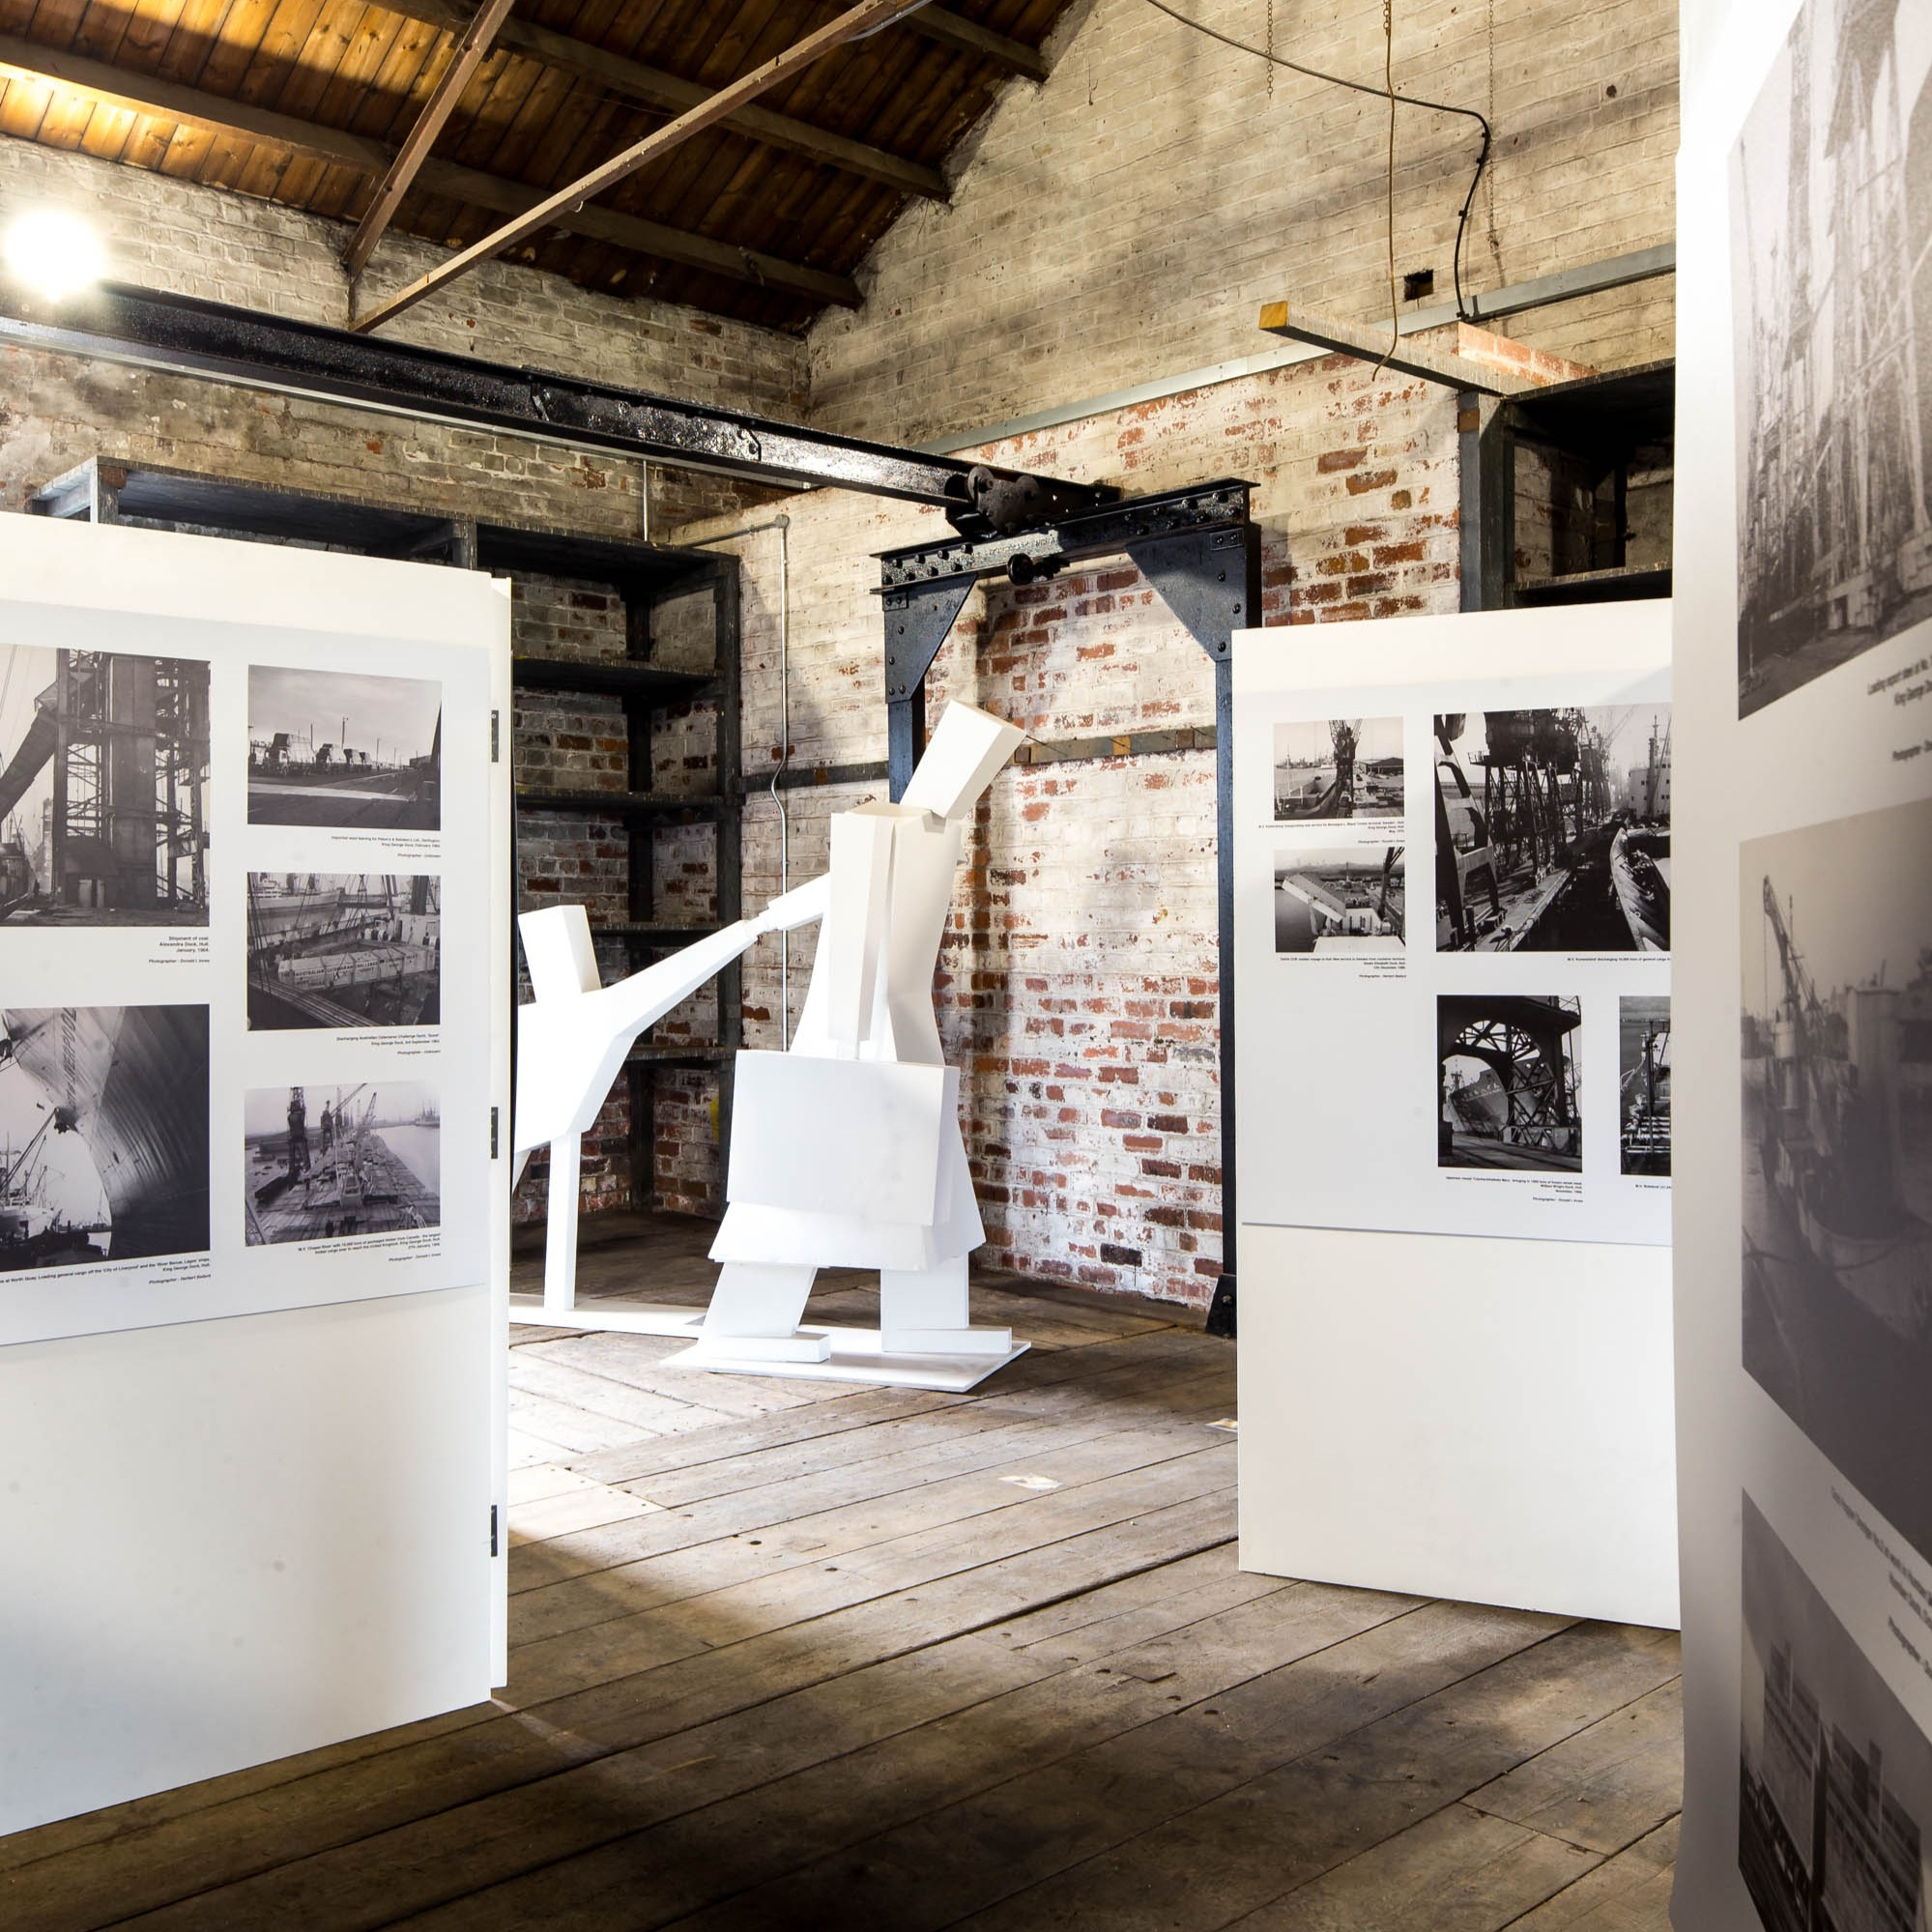 INPORT STORIES - We all have photos in the attic. What happens when the dust is blown off and the history of our port cities' docks is uncovered? A story must be told. Amazing images from fine local photographers, the ABP archive, the Hull Daily Mail Flashback collection and a number of private individuals and local history enthusiasts.